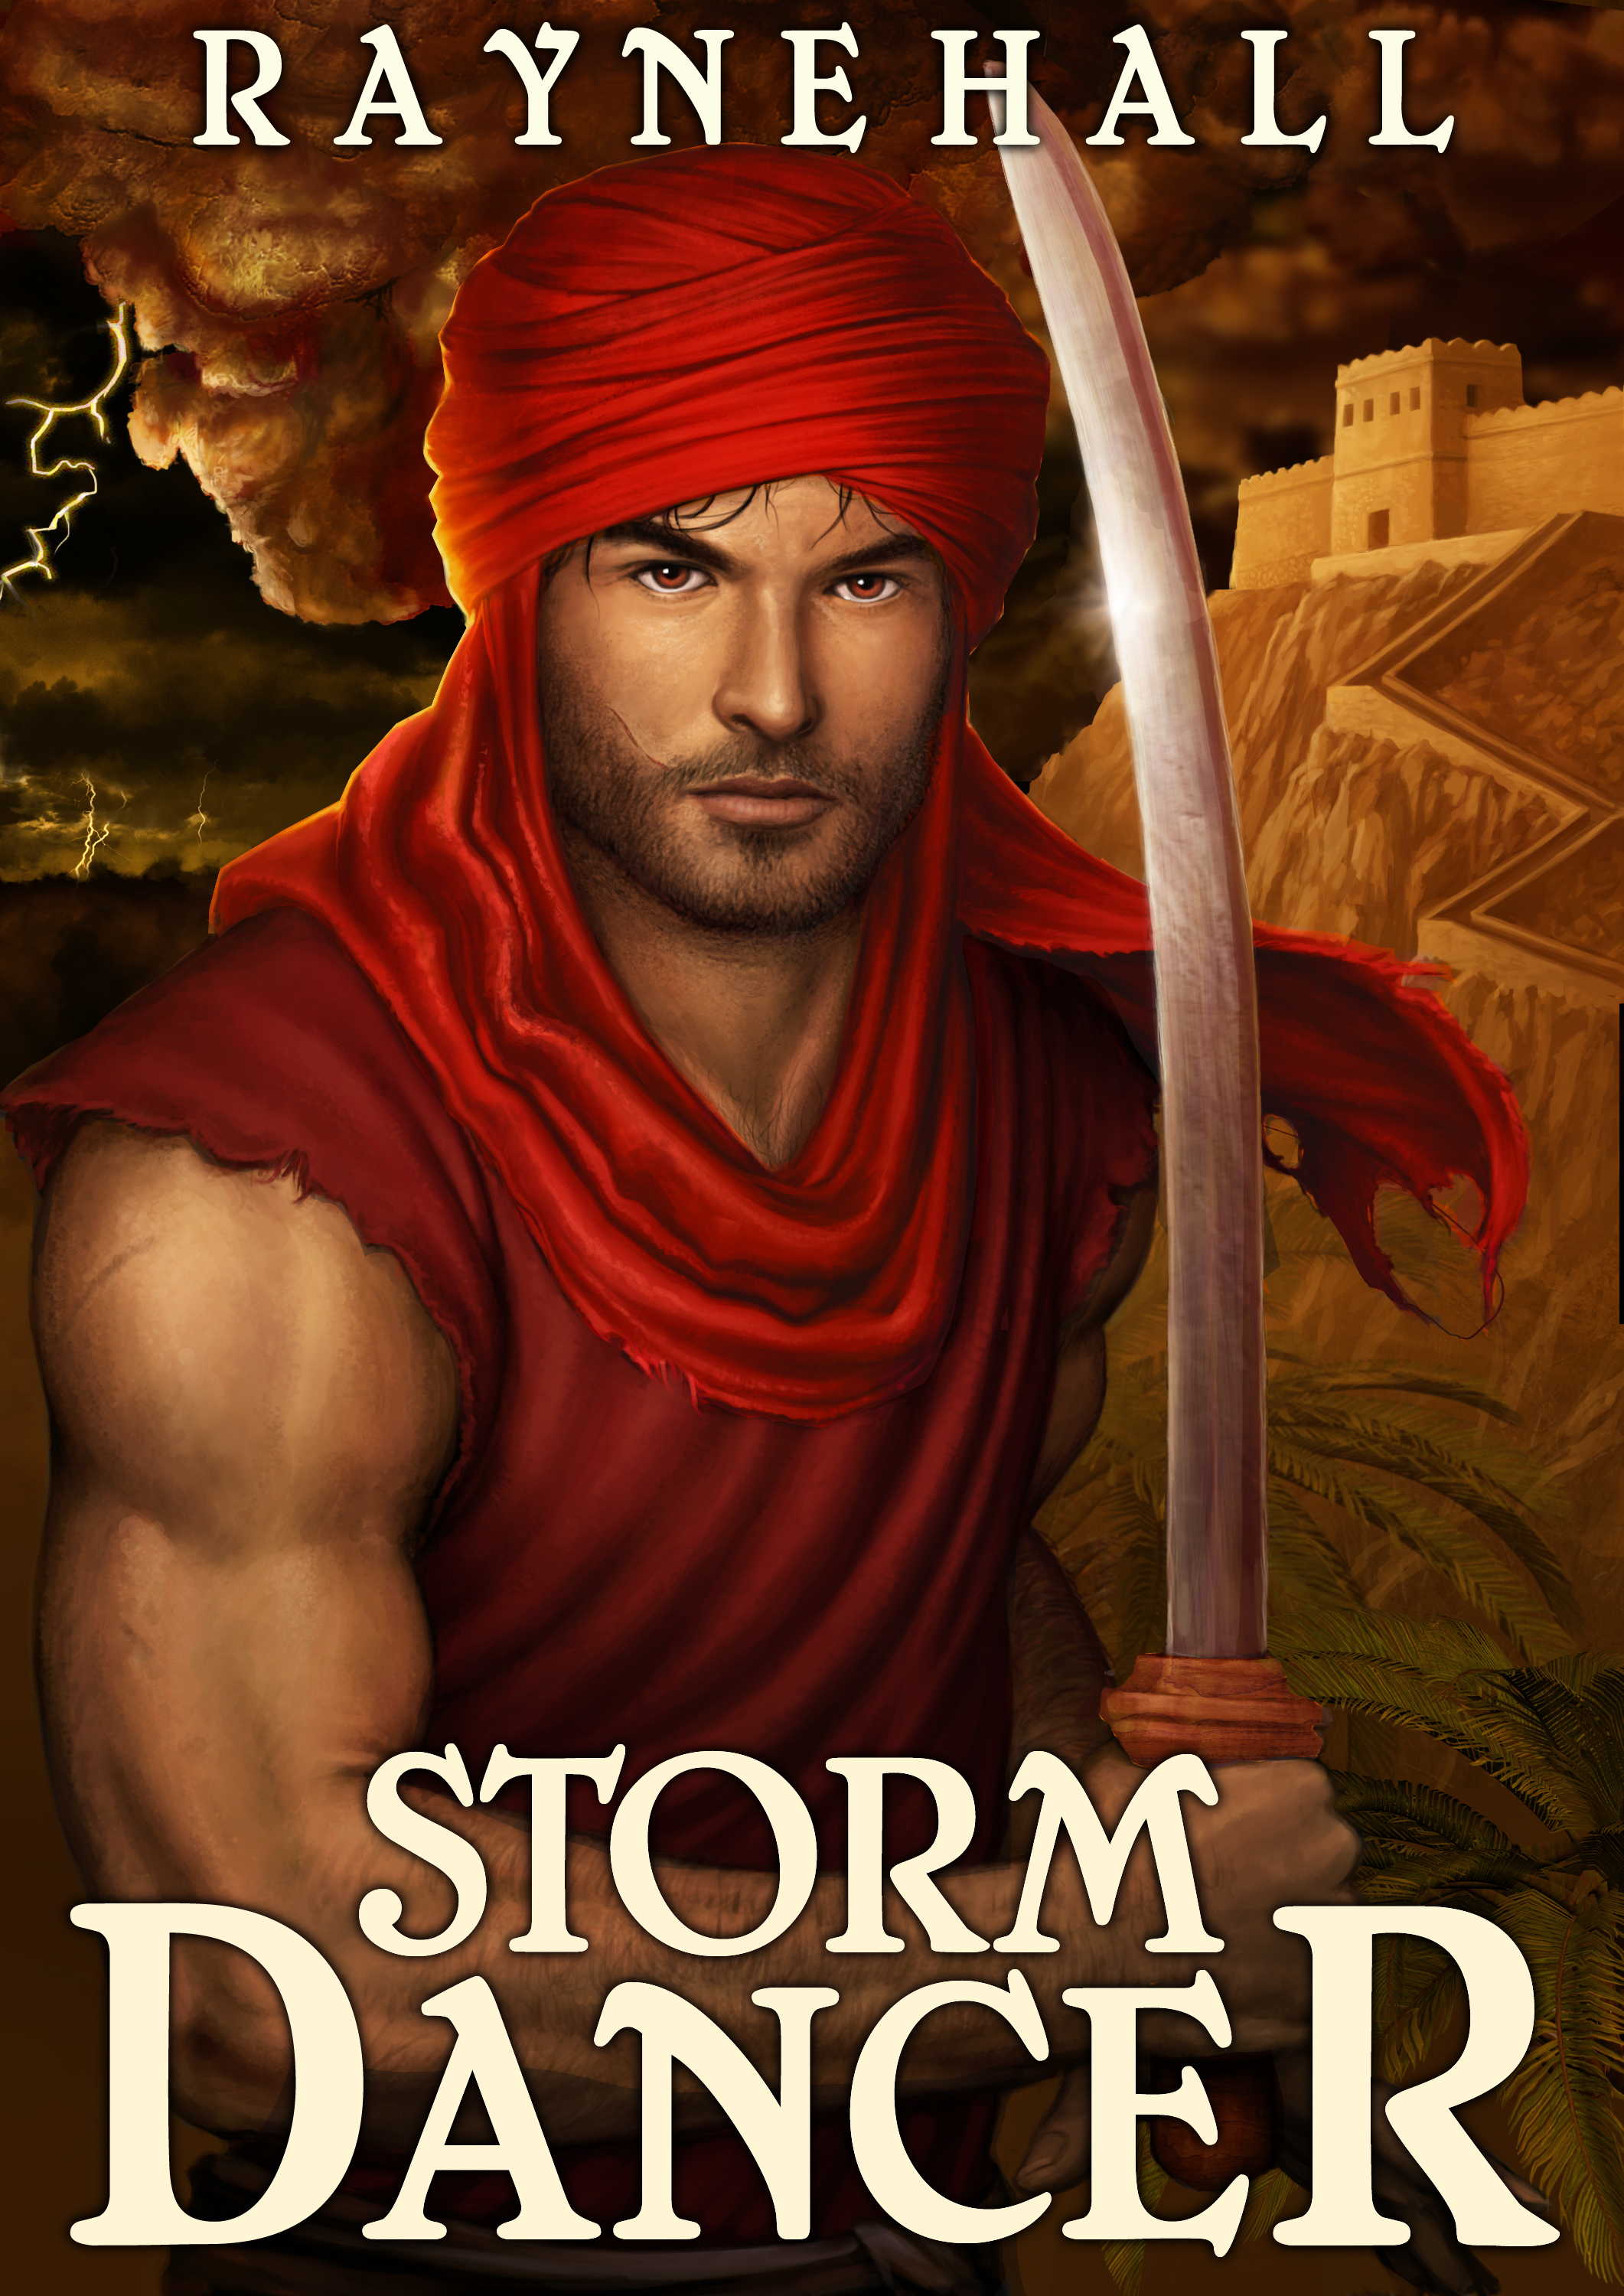 storm-dancer-dark-epic-fantasy-raynehall-cover-2013-01-30